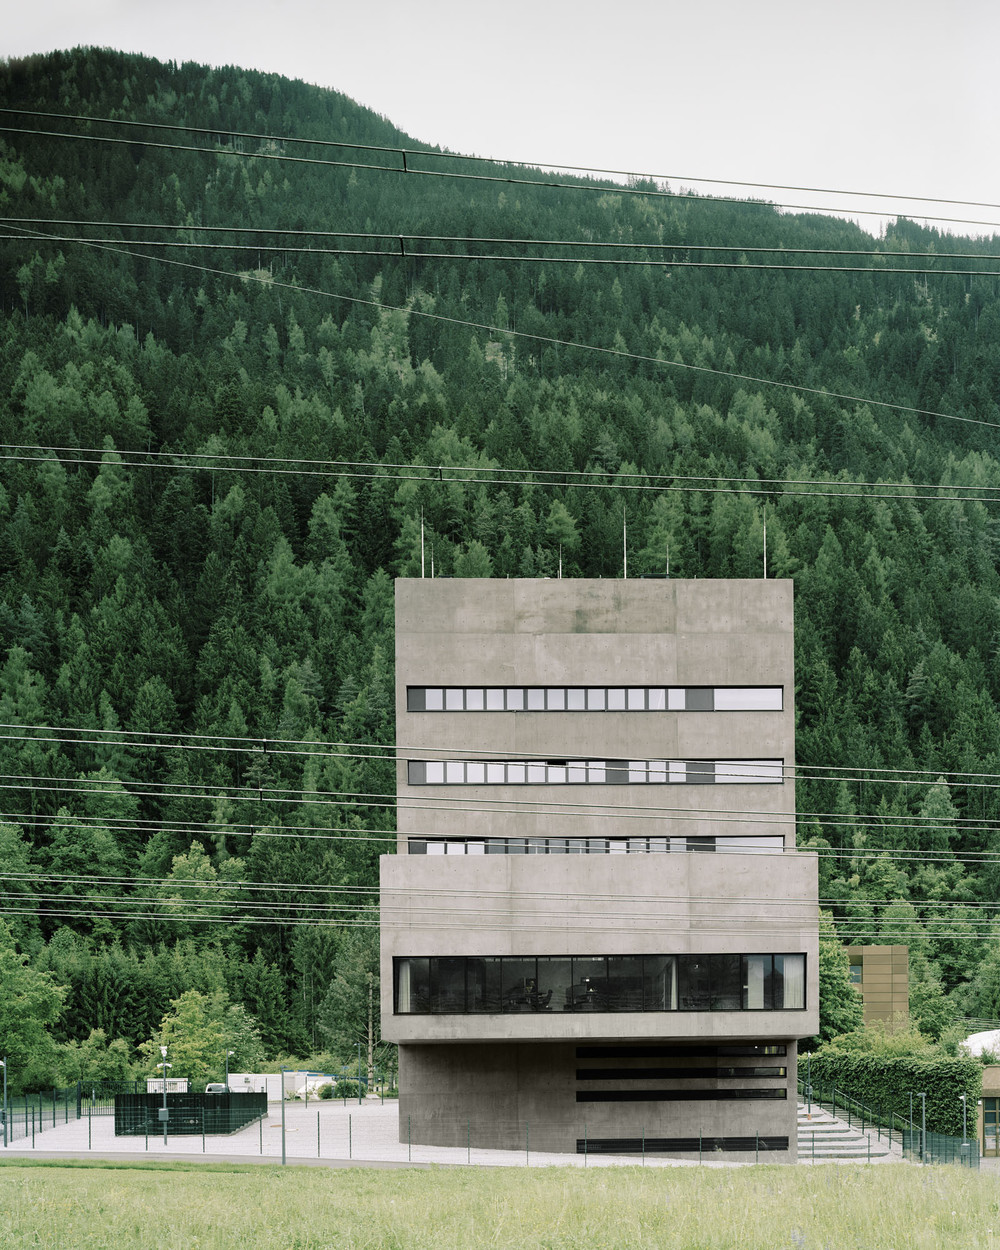 Tiwag Power Station Control Centre, Austria